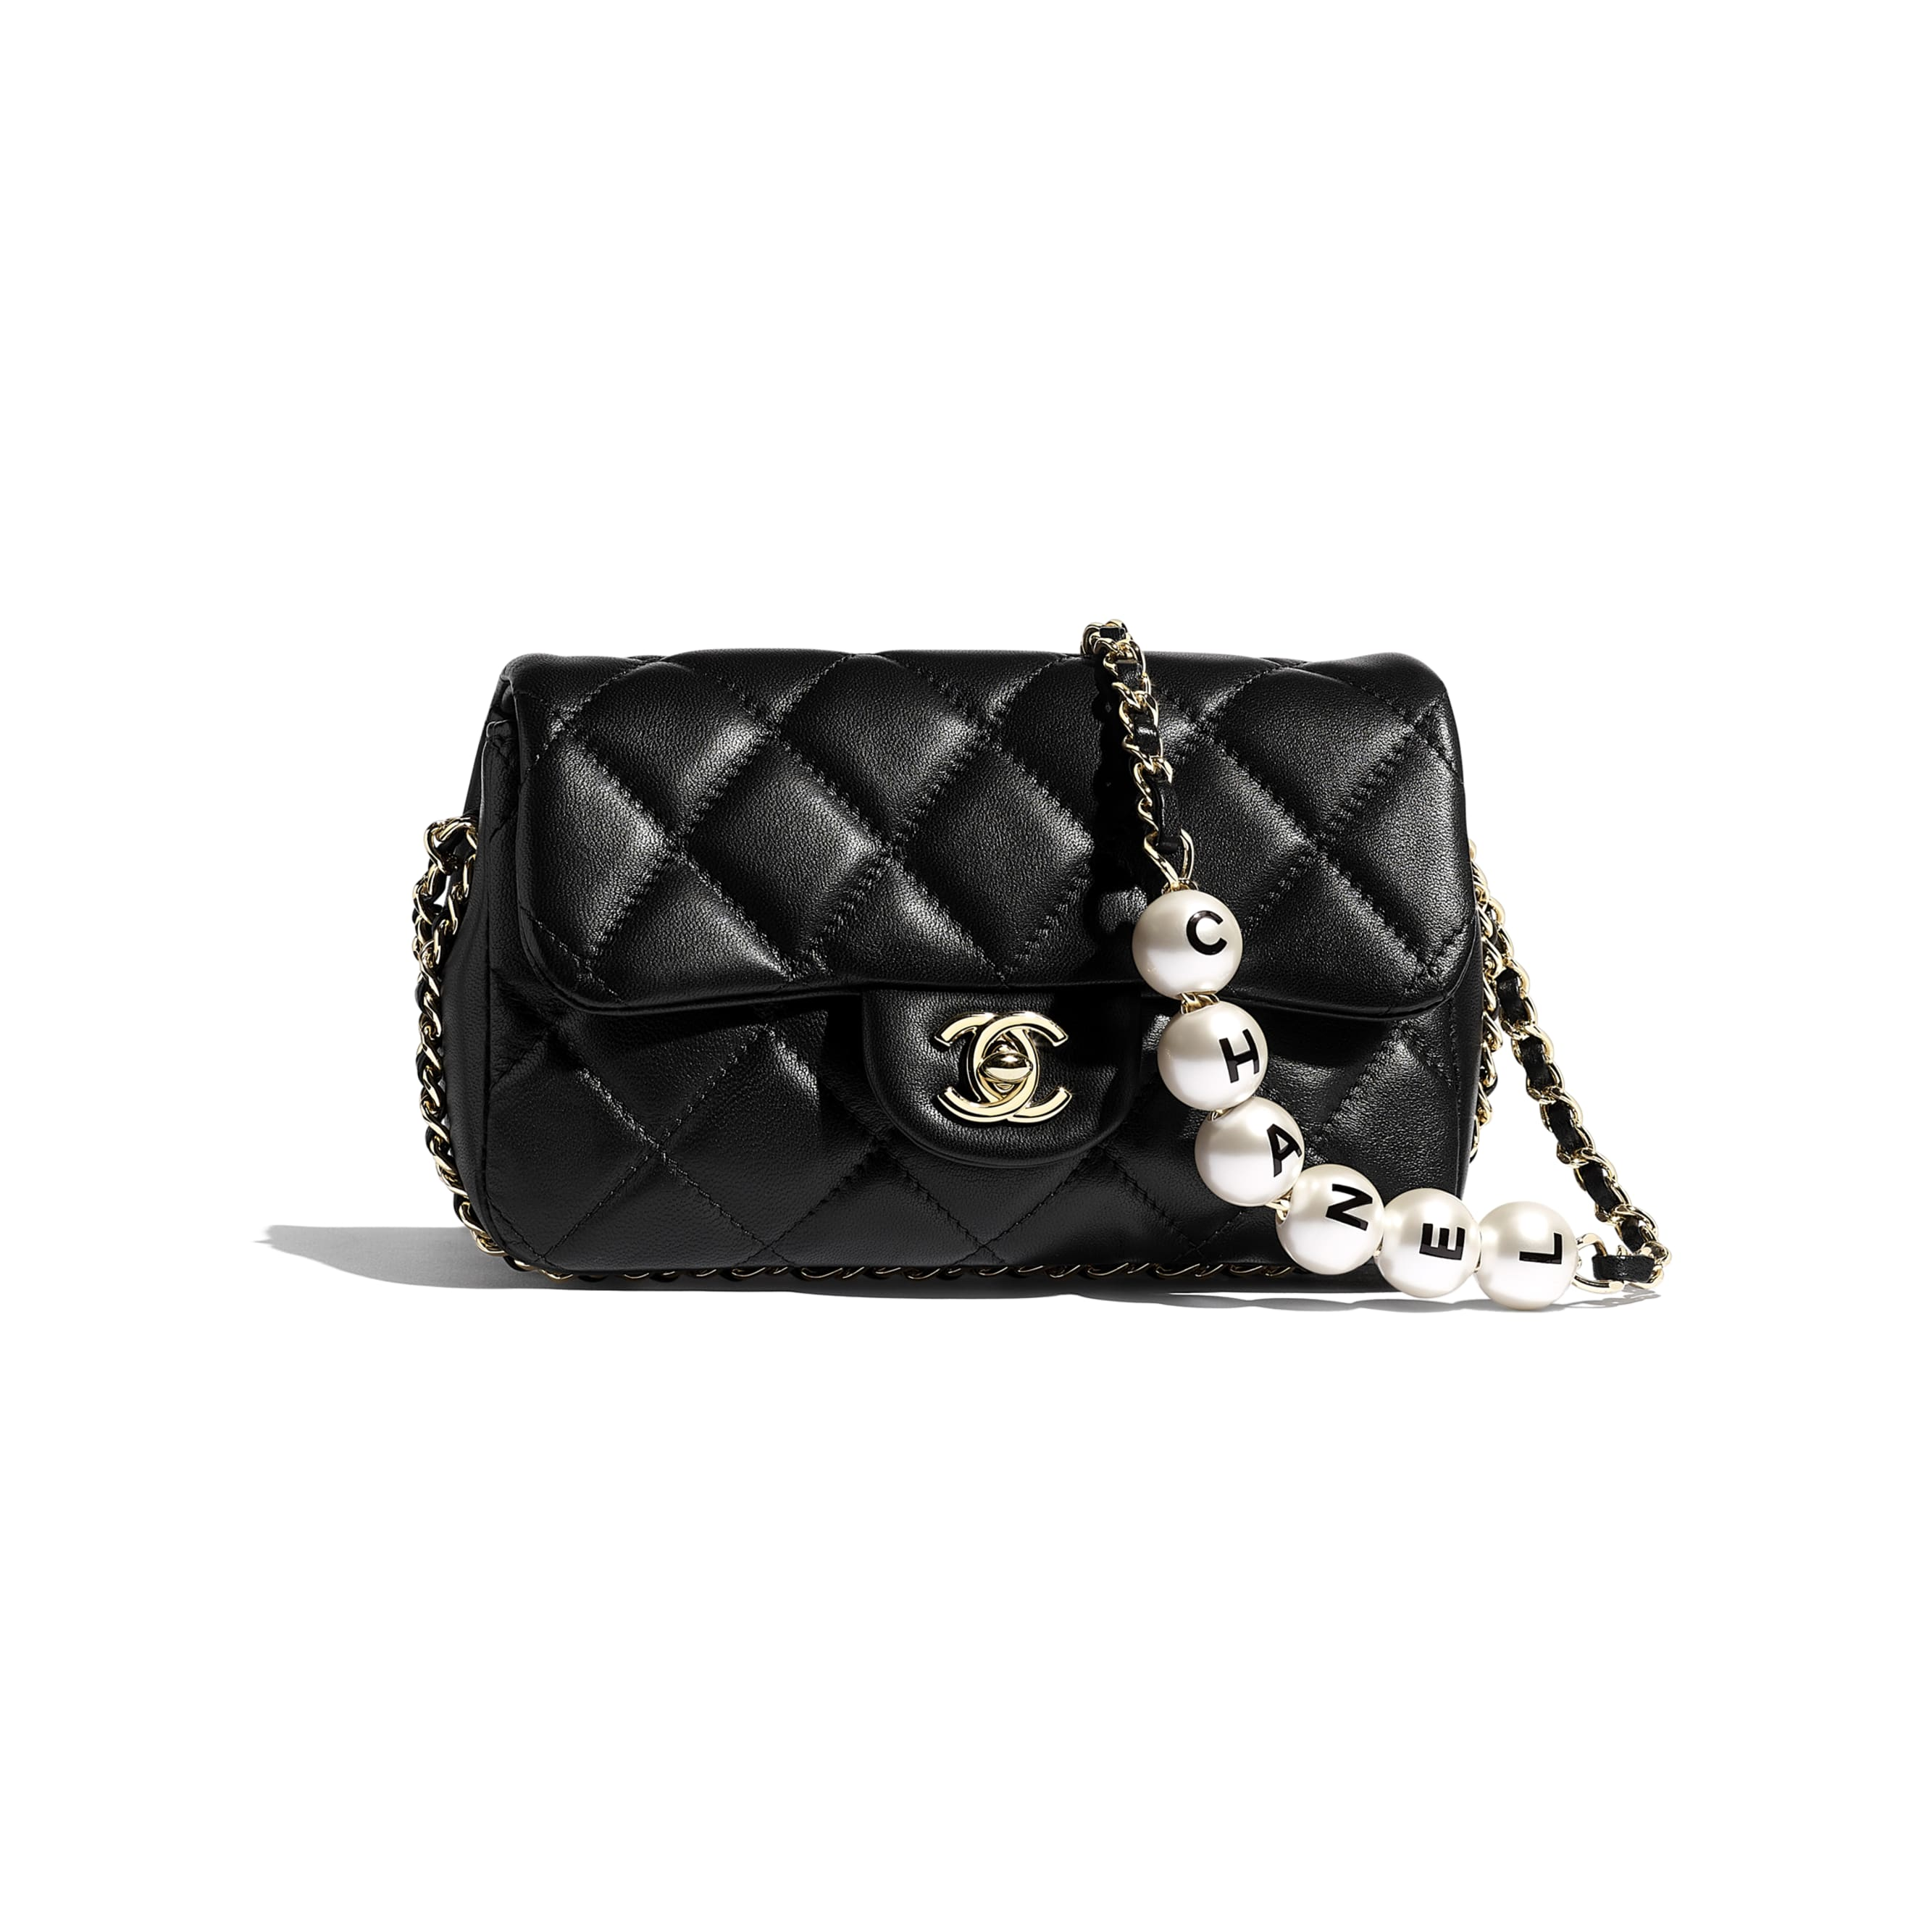 Small Flap Bag - Black - Lambskin, Imitation Pearls & Gold Metal - CHANEL - Default view - see standard sized version